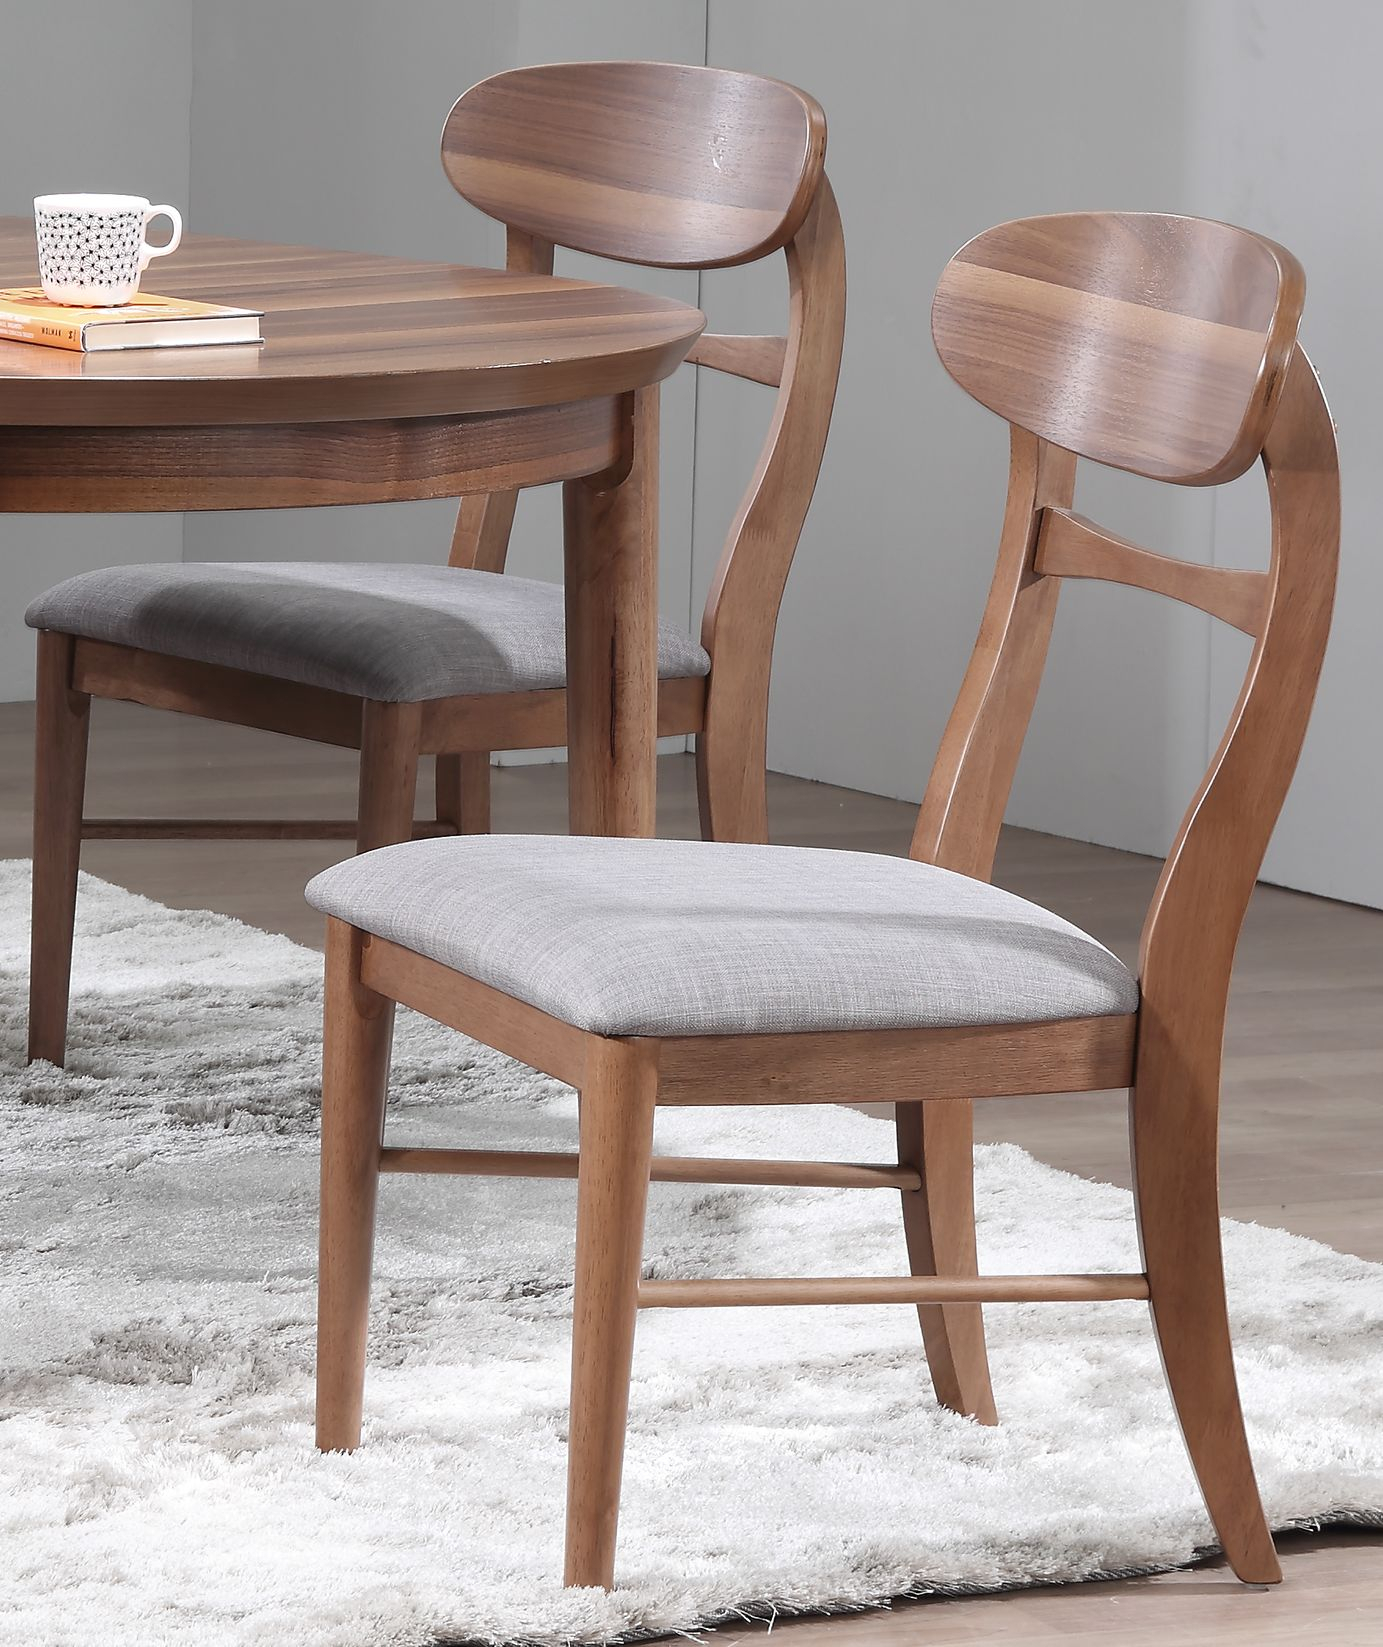 Beresford Dining Bench May 2019 Within 2017 Autberry 5 Piece Dining Sets (Image 5 of 20)